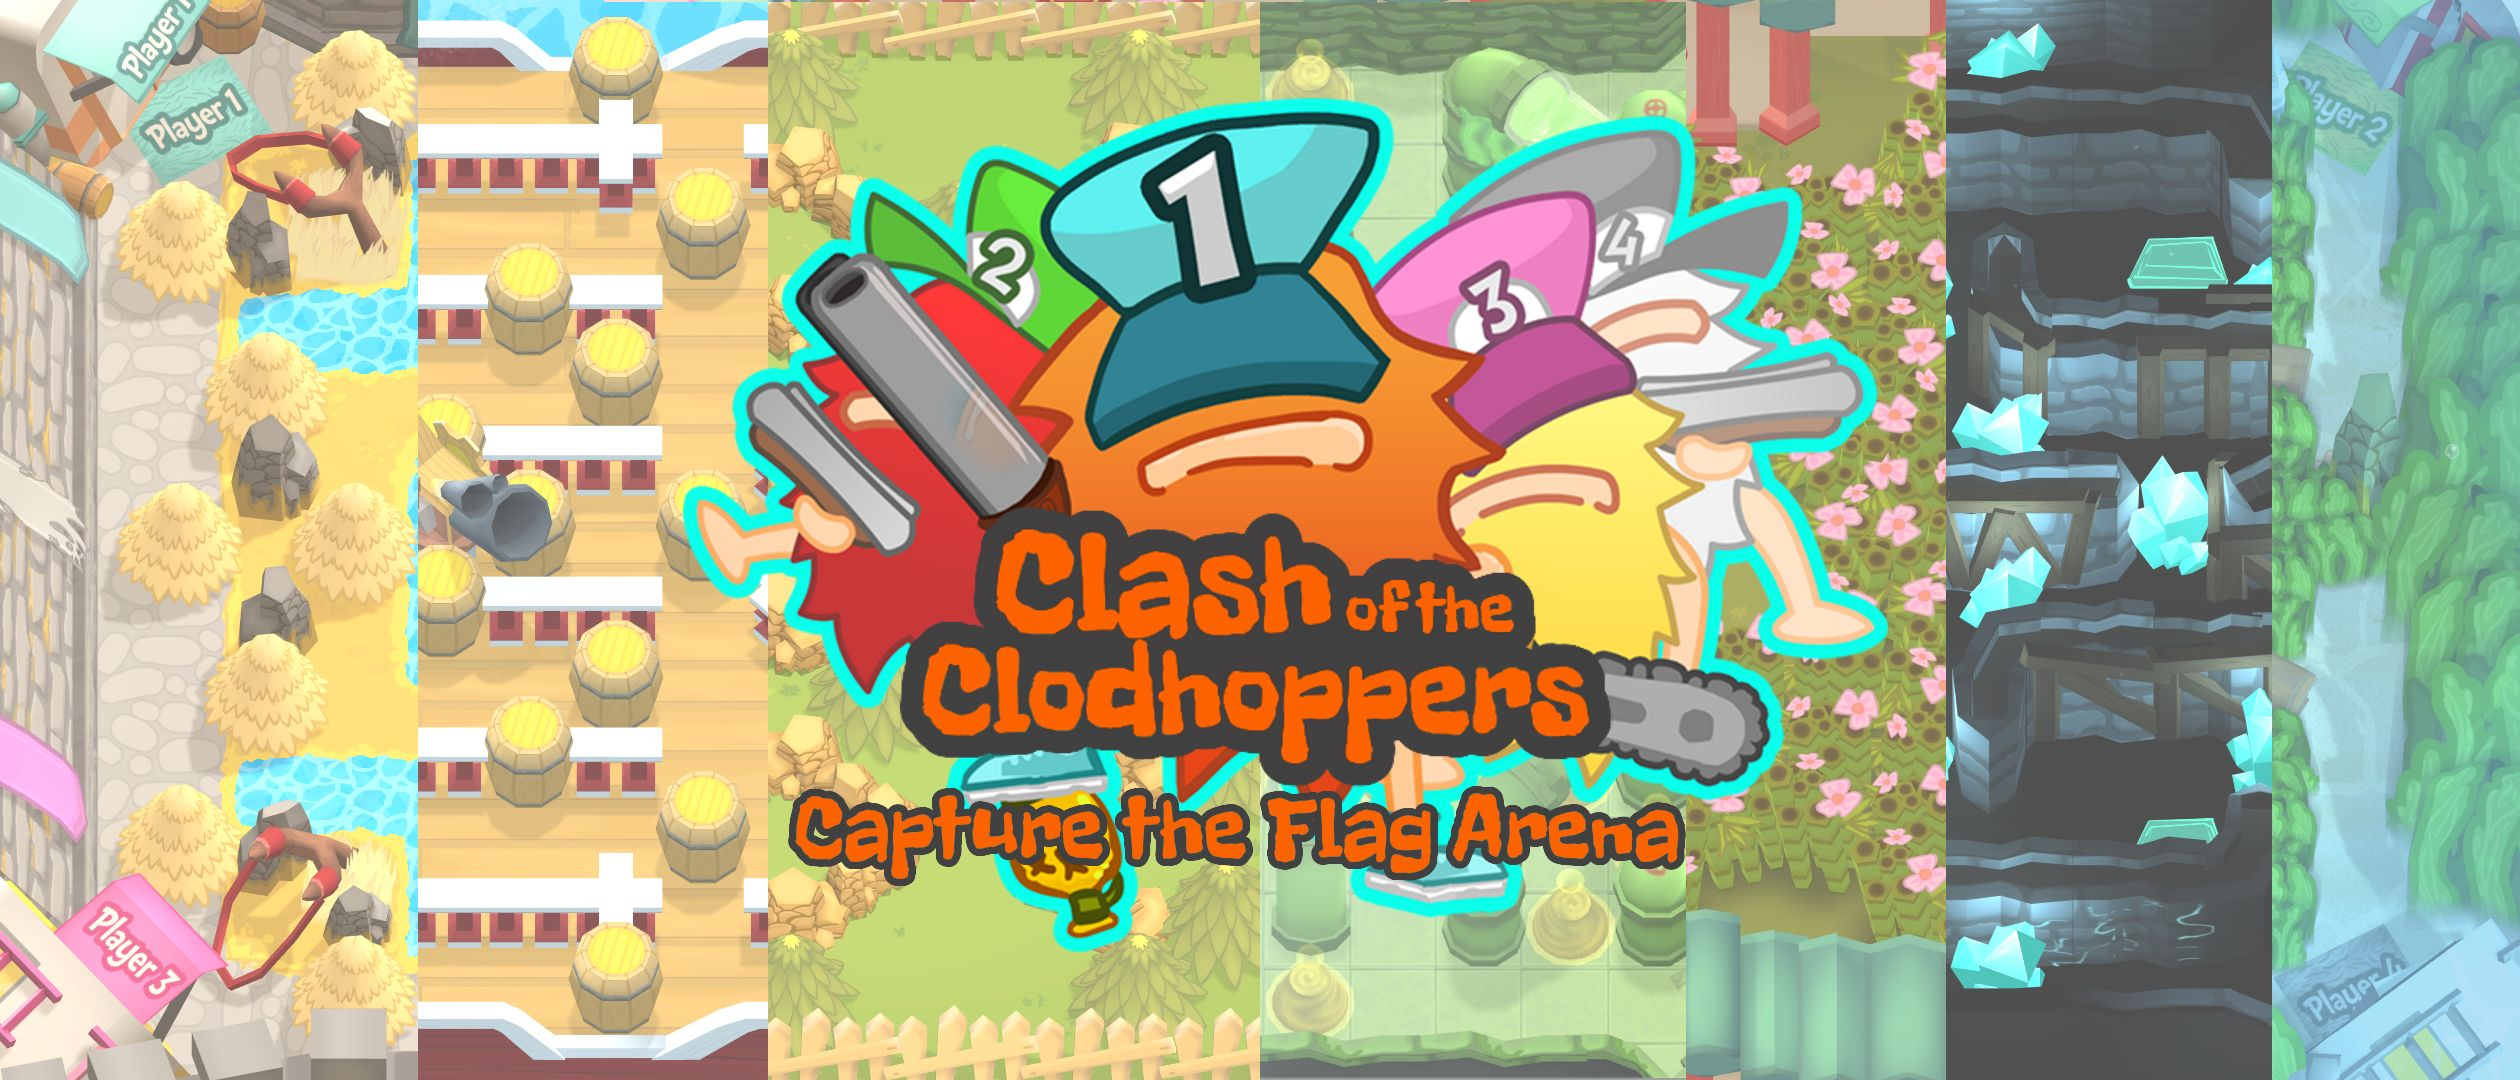 Clash of the Clodhoppers